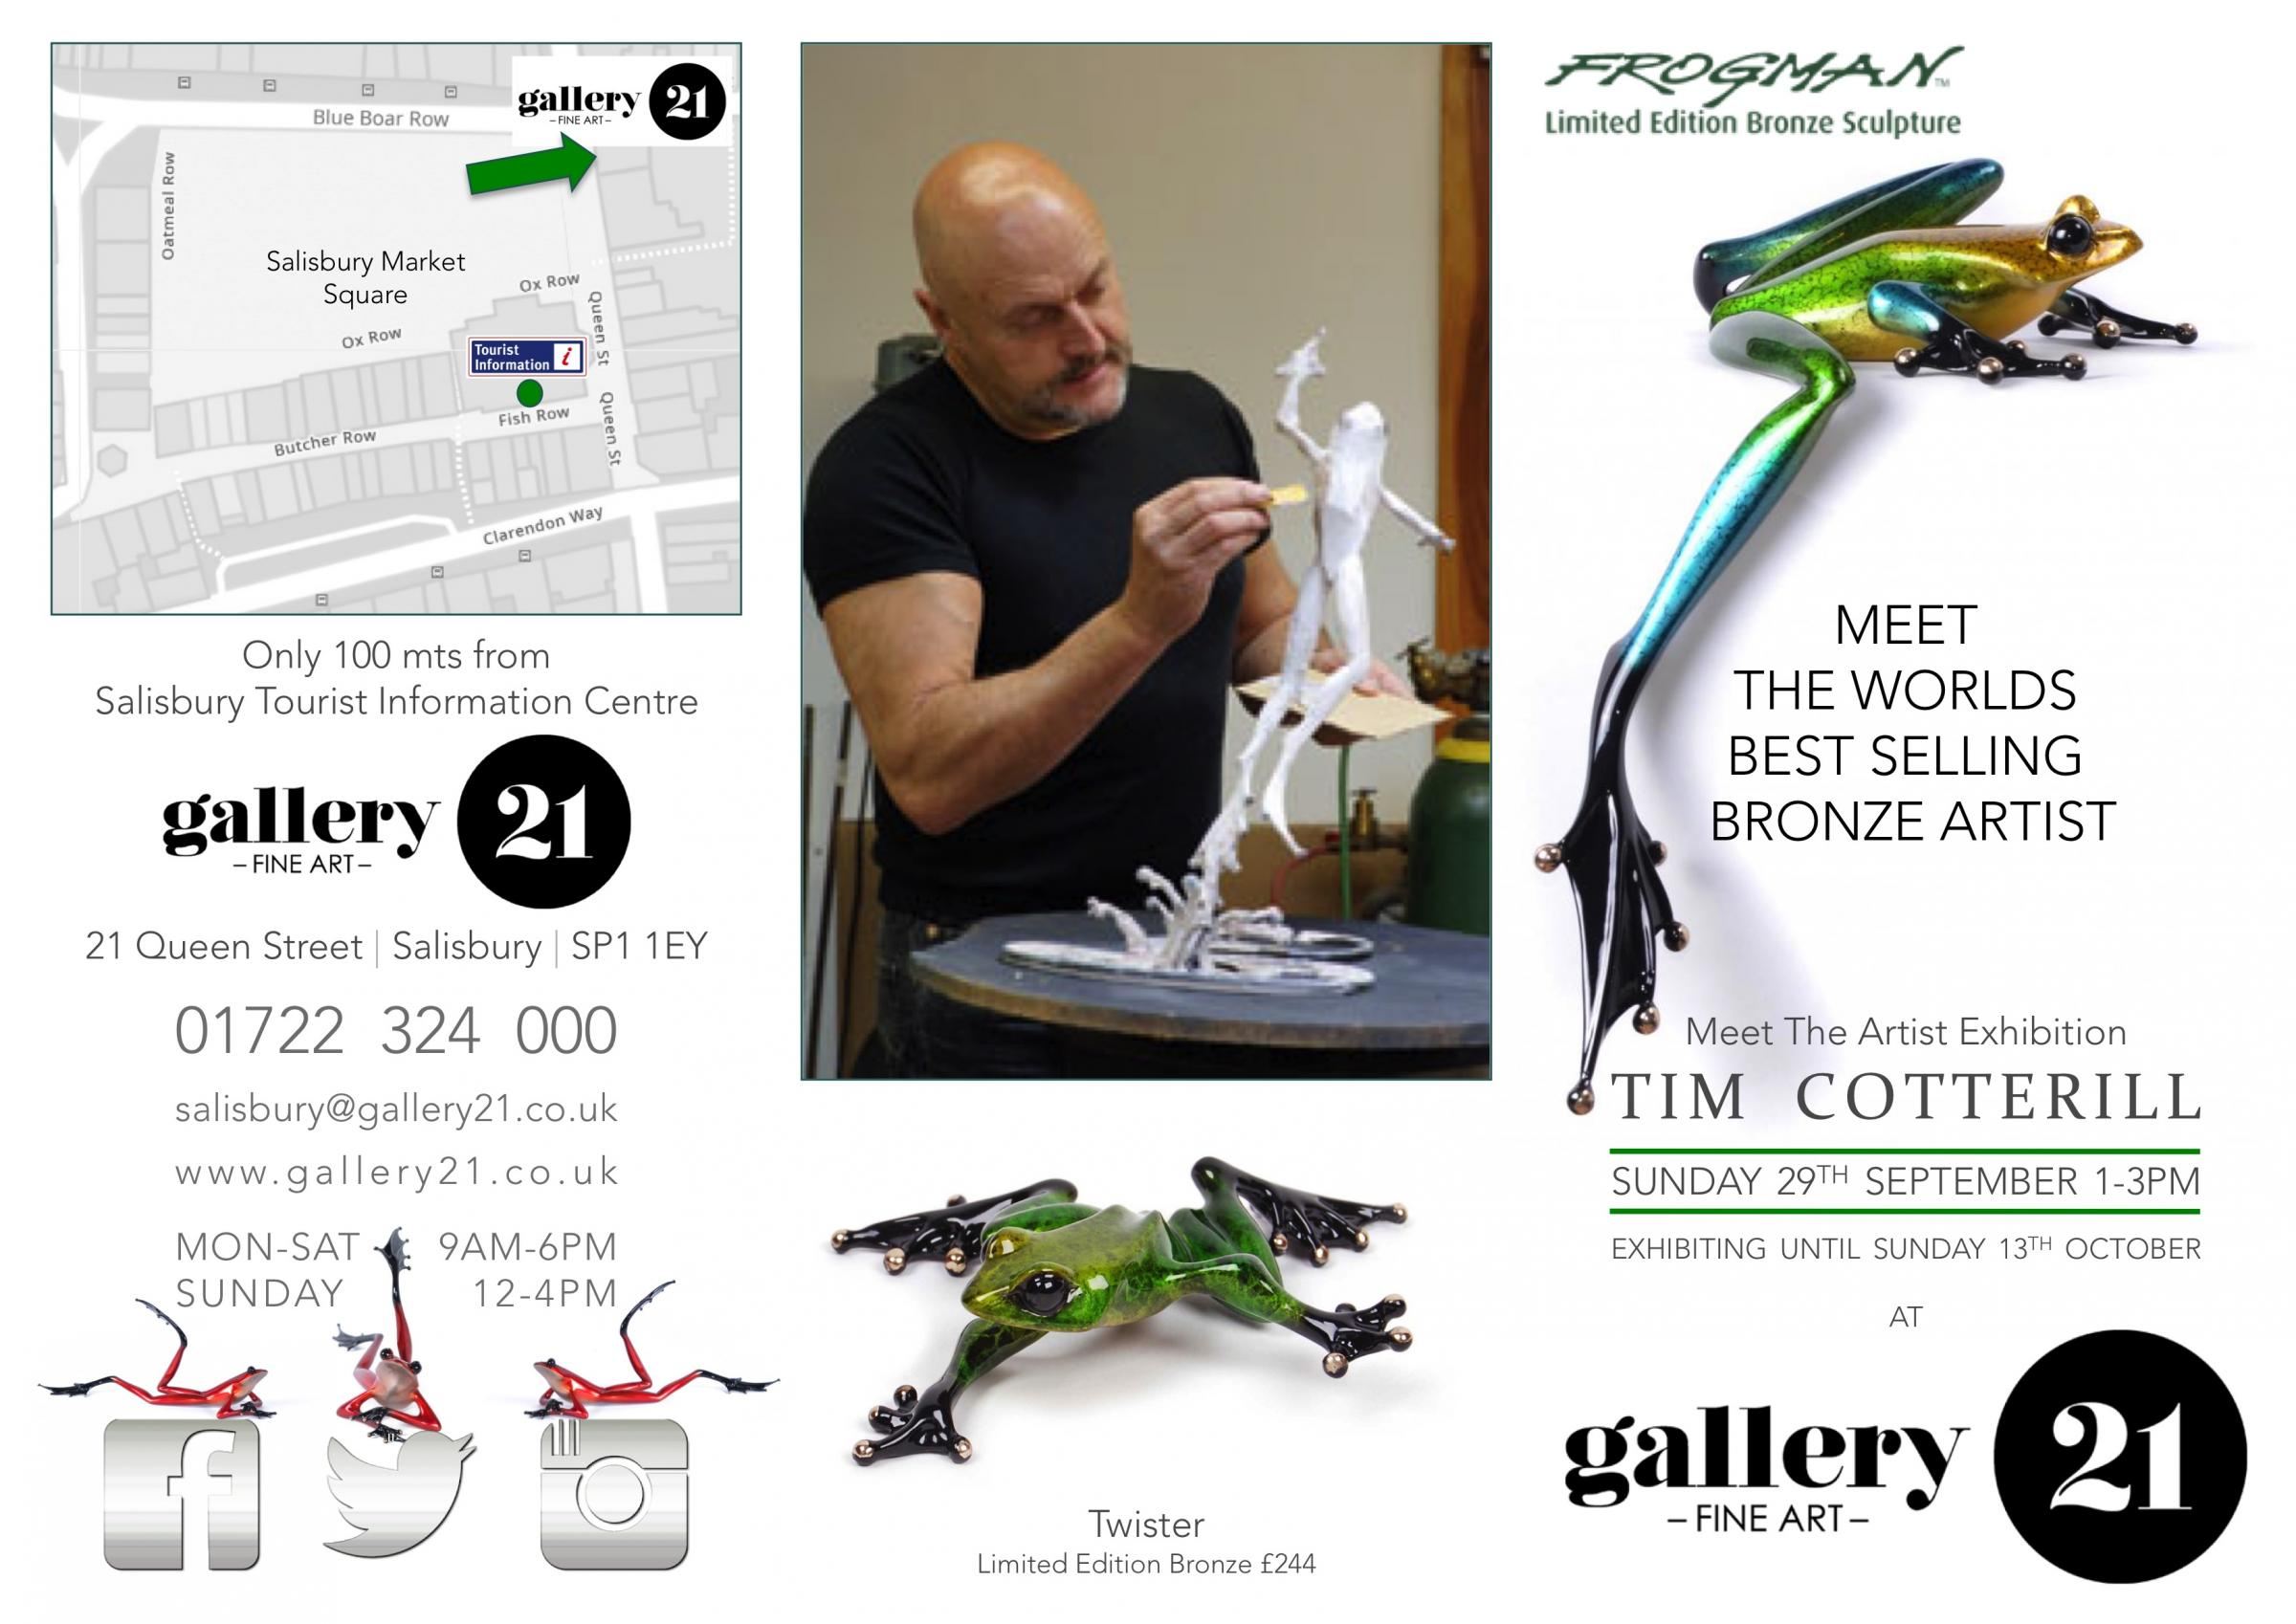 Meet The Artist - Frogman Exhibition - The Worlds Best Selling Bronze Artist Comes To Salisbury